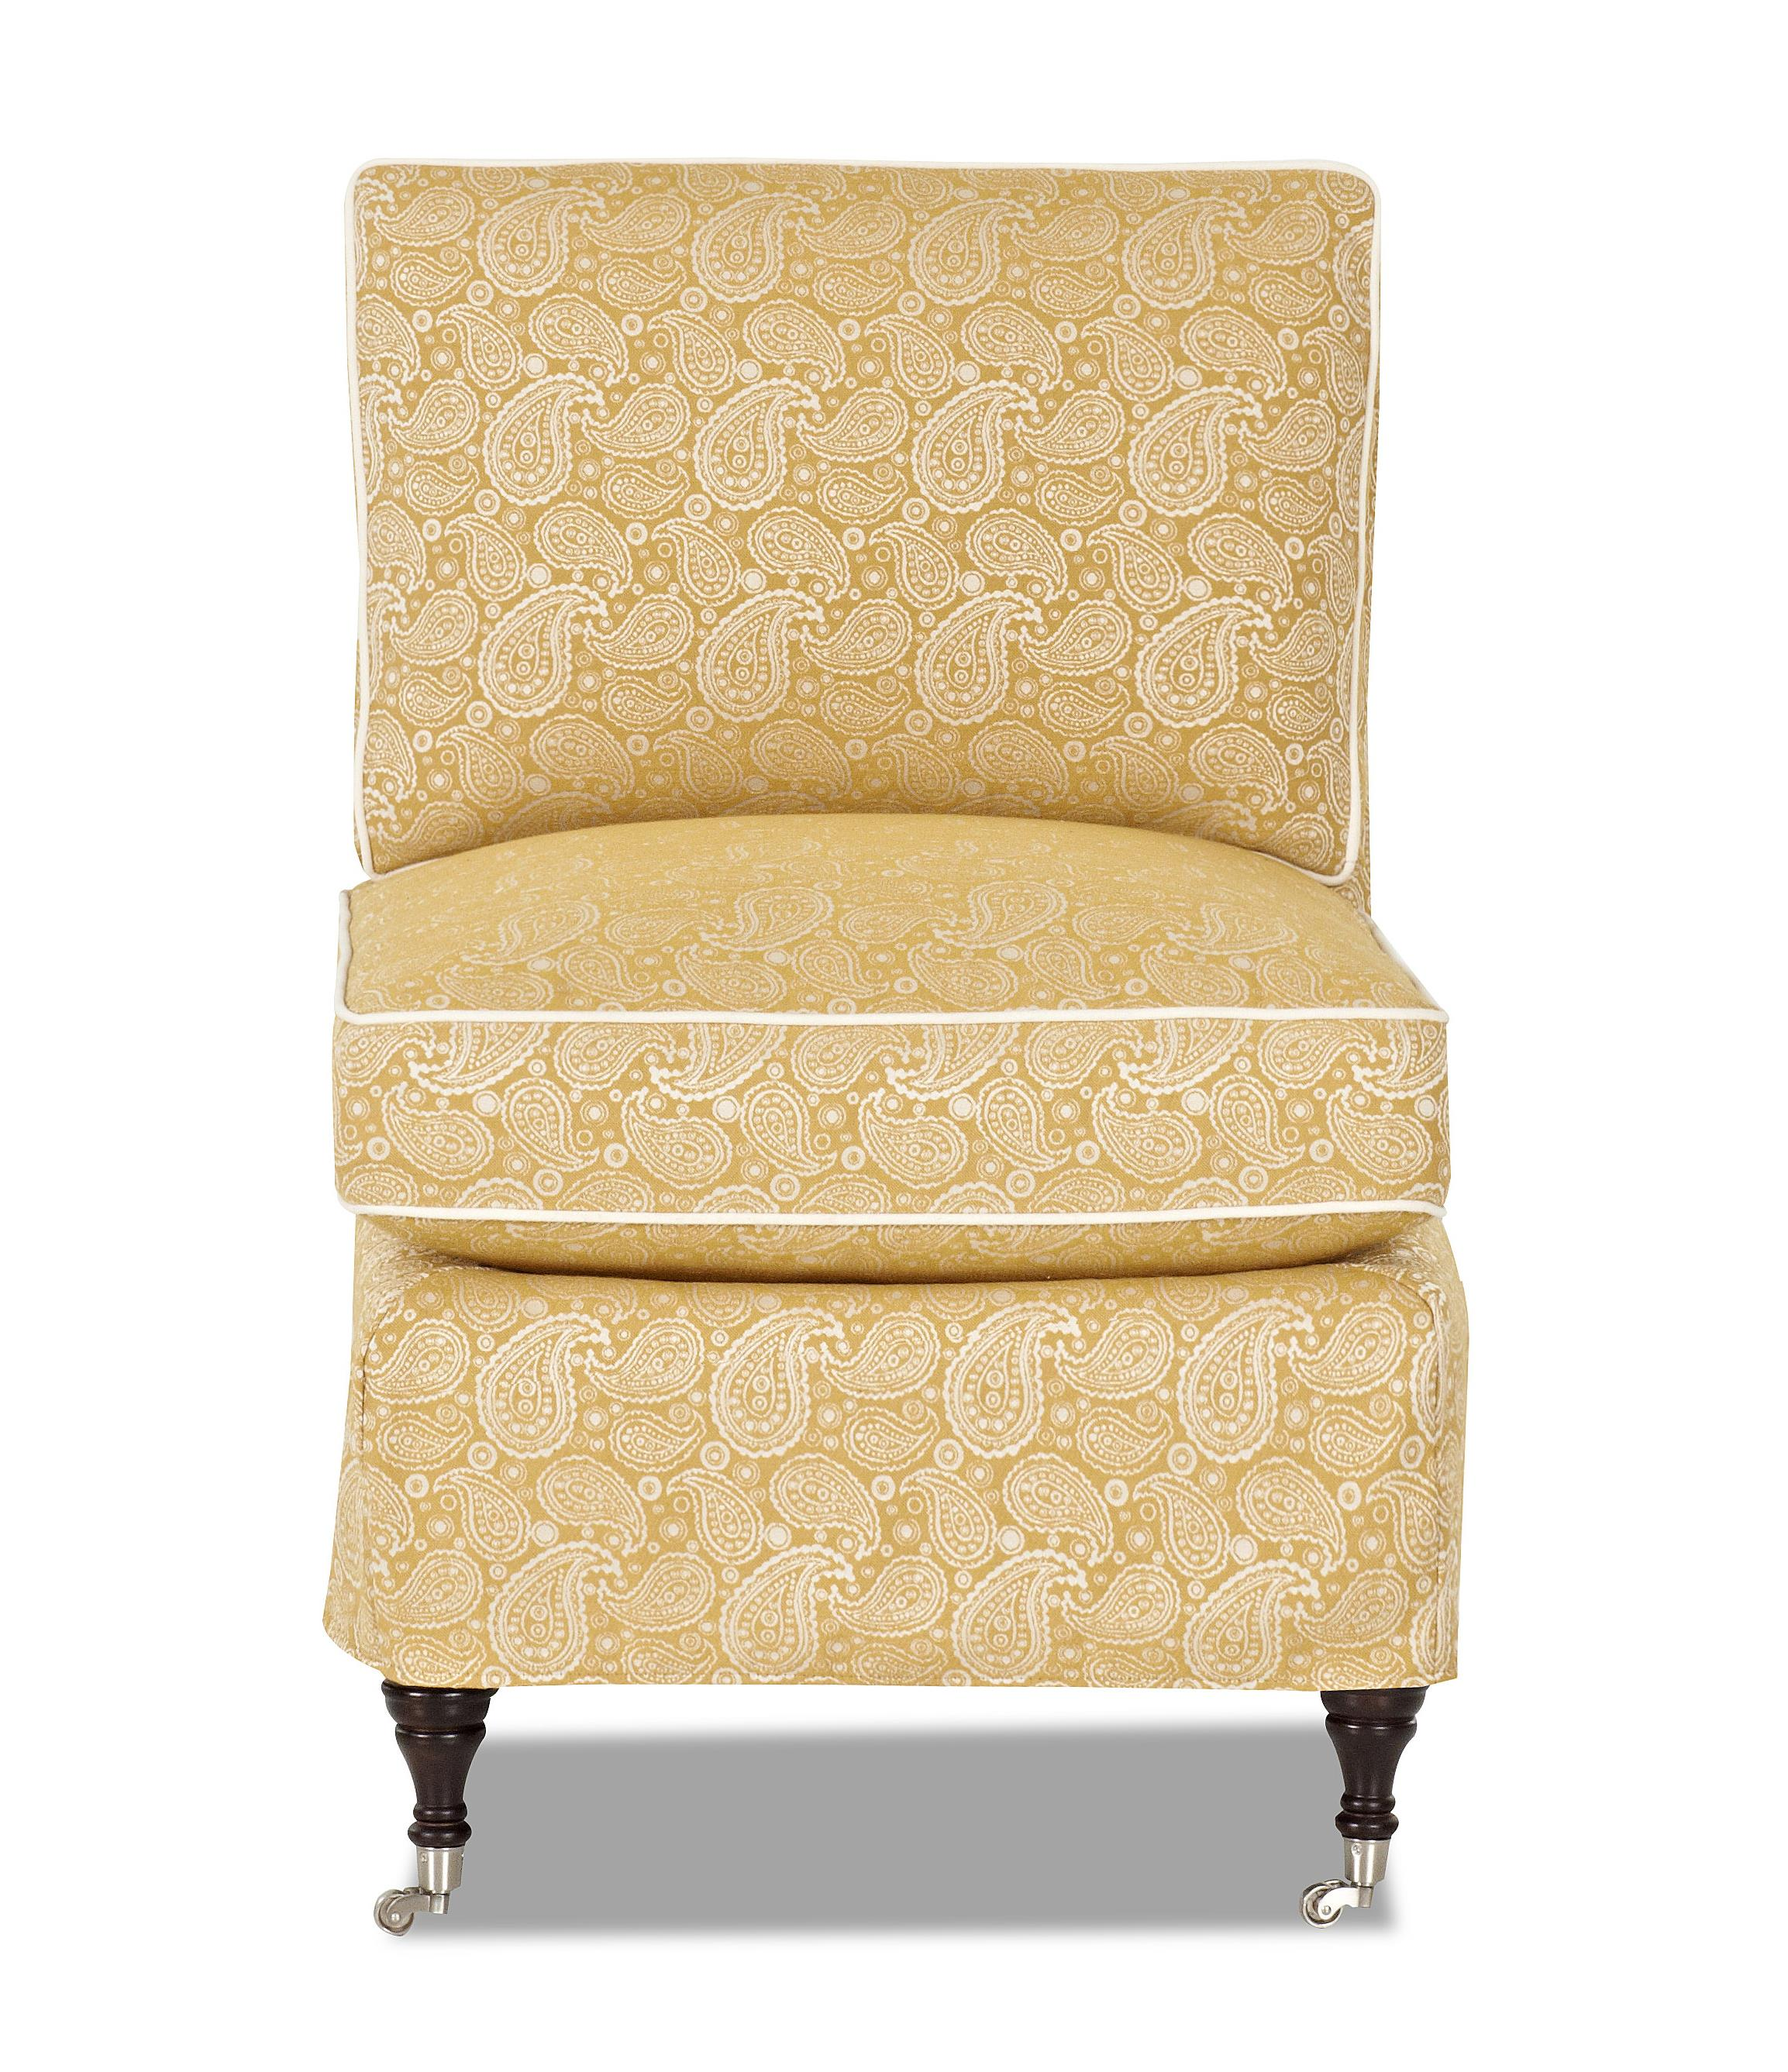 Klaussner trixie armless chair item number d610 ac susannahmustard